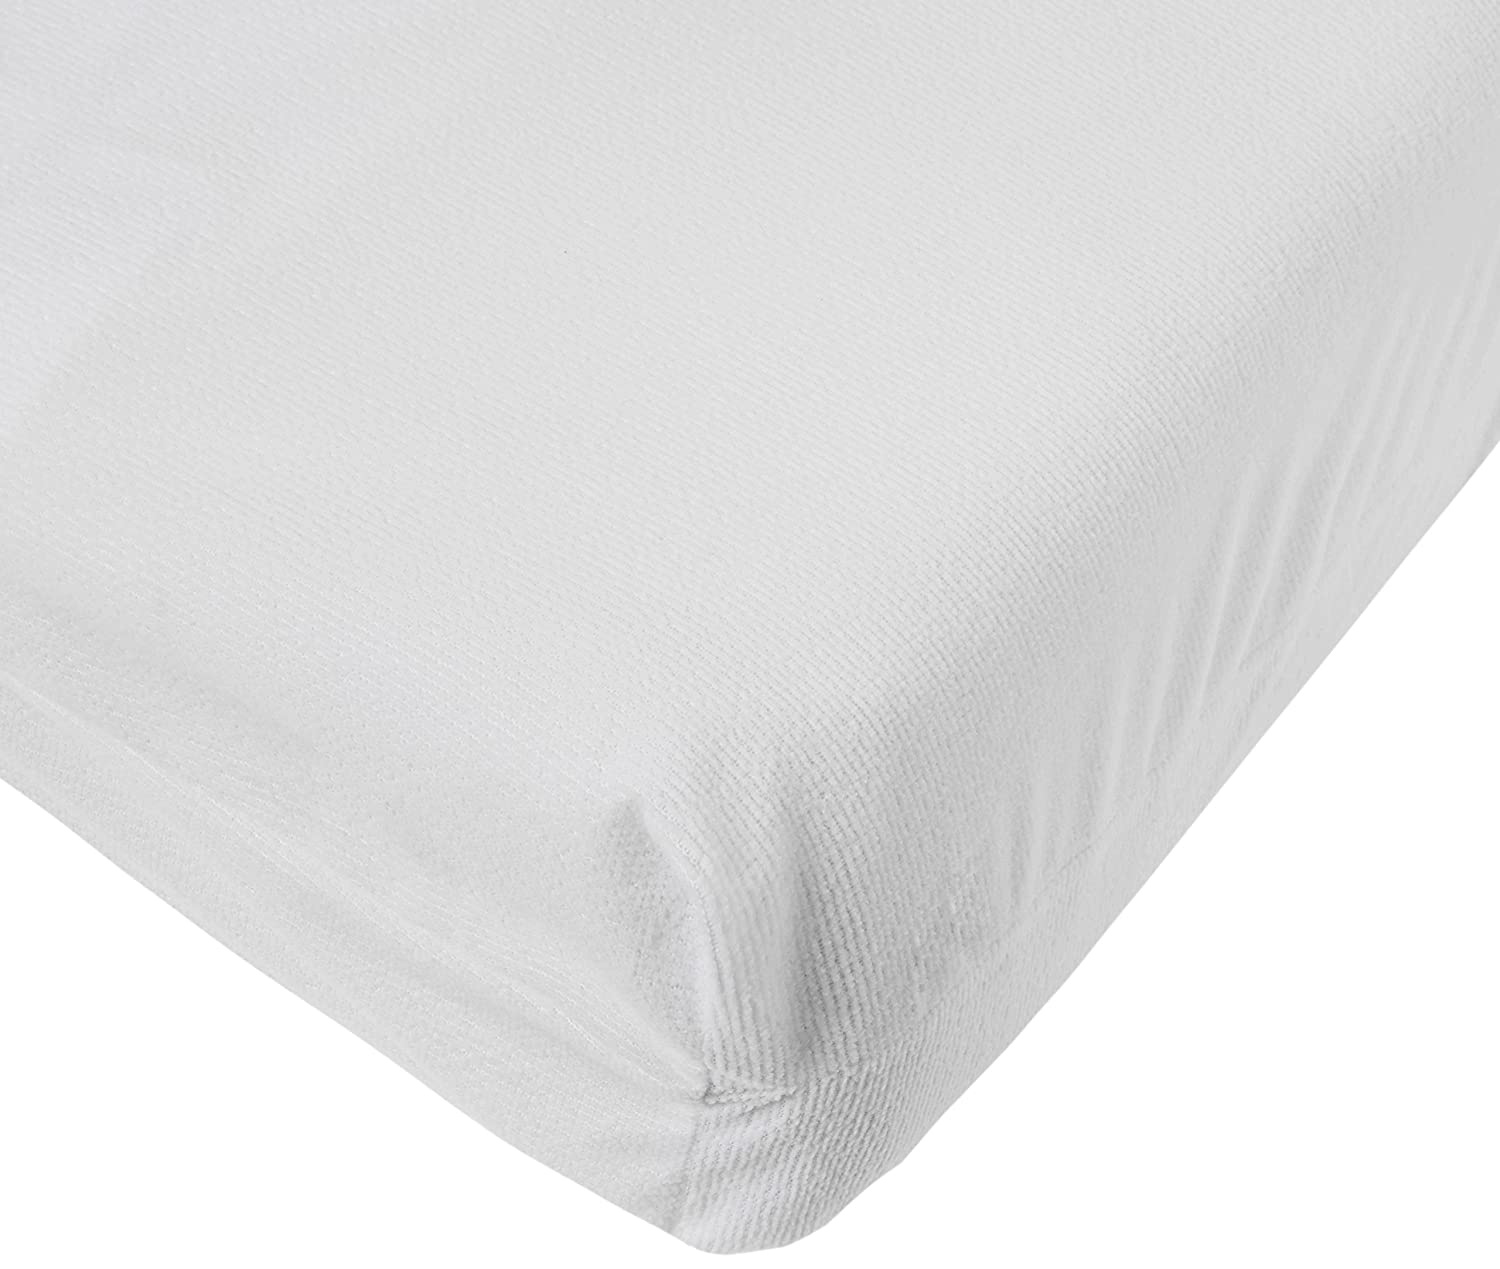 Babycalin Full Cover Zipped Mattress Protector 70 x 140 x 10 cm BBC422704